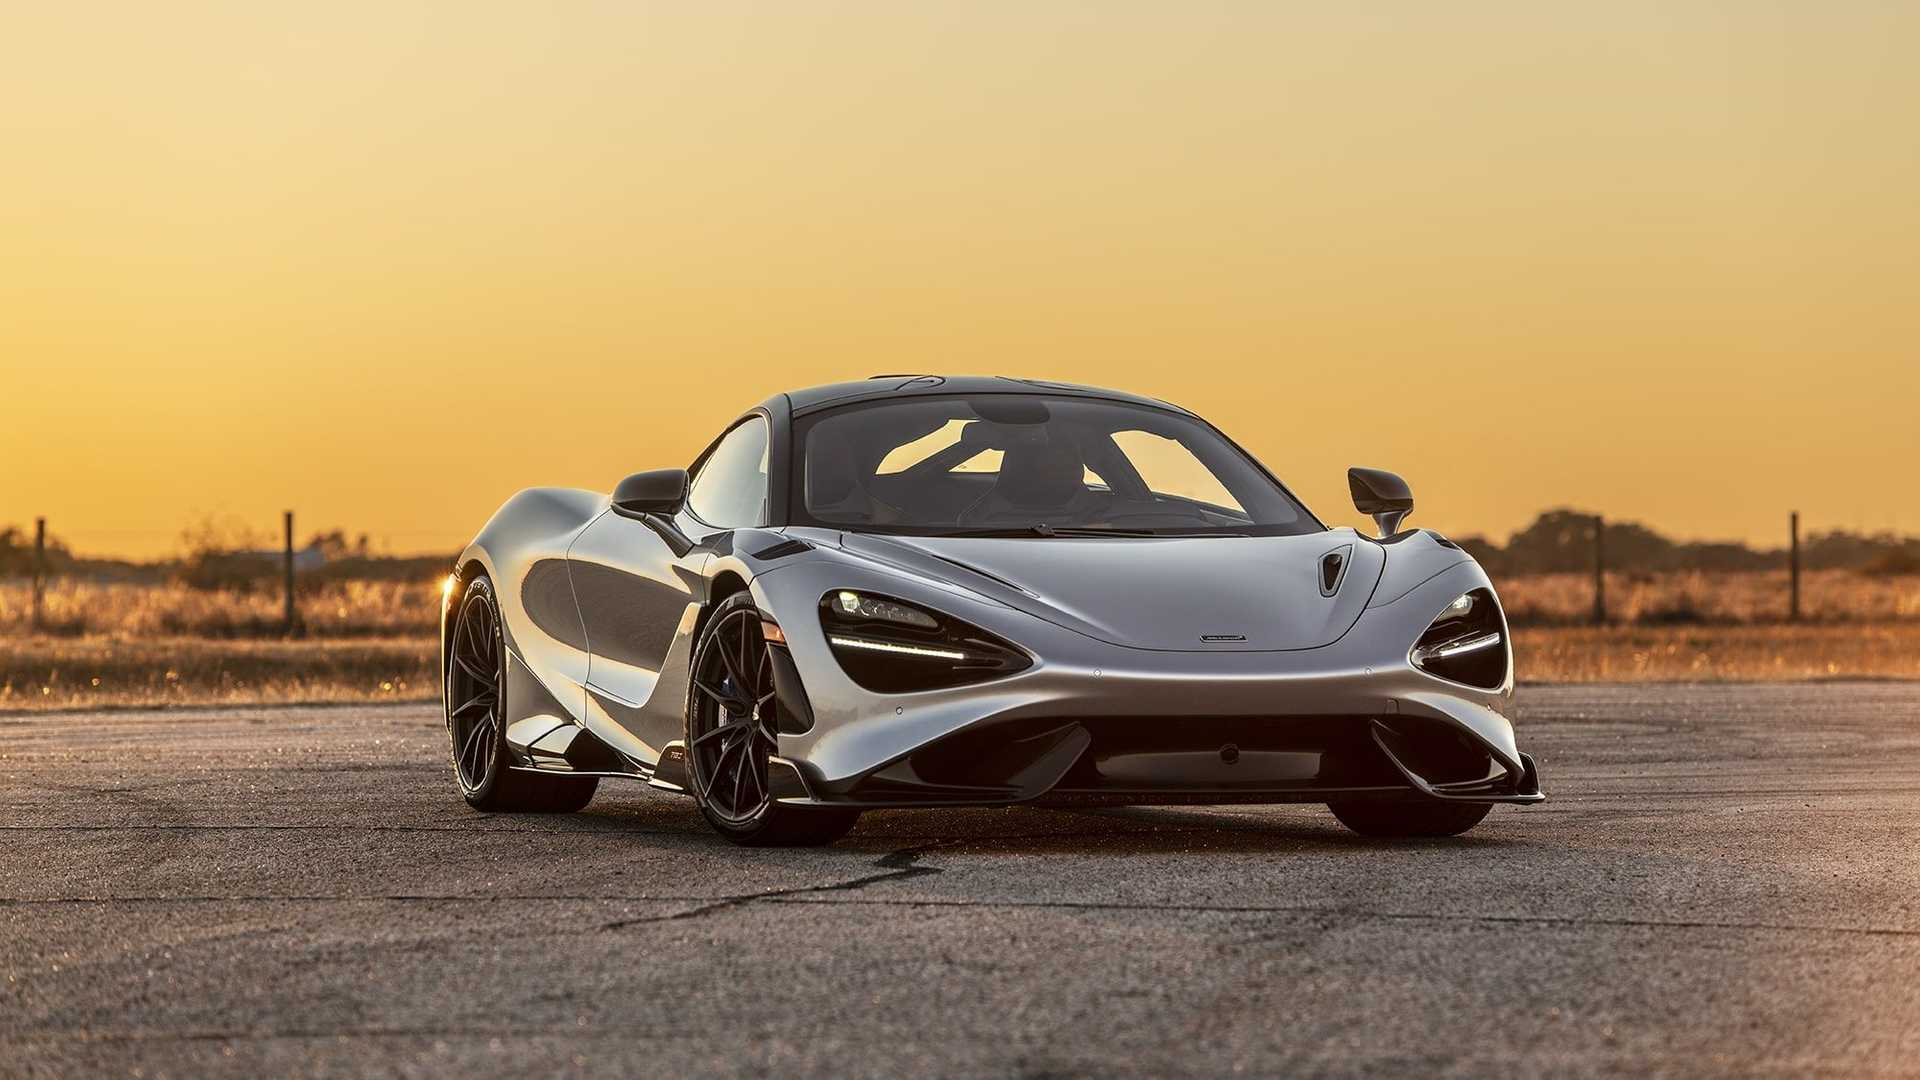 Hennessey Performance measured the performance of the McLaren 765LT on a dyno in early February, concluding that the supercar delivers more punch than its paper specs care to mention. Even so, the tuner resolved to raise the output to 1,000 horsepower at the crank and cut the sprint time down to just 2.1 seconds.